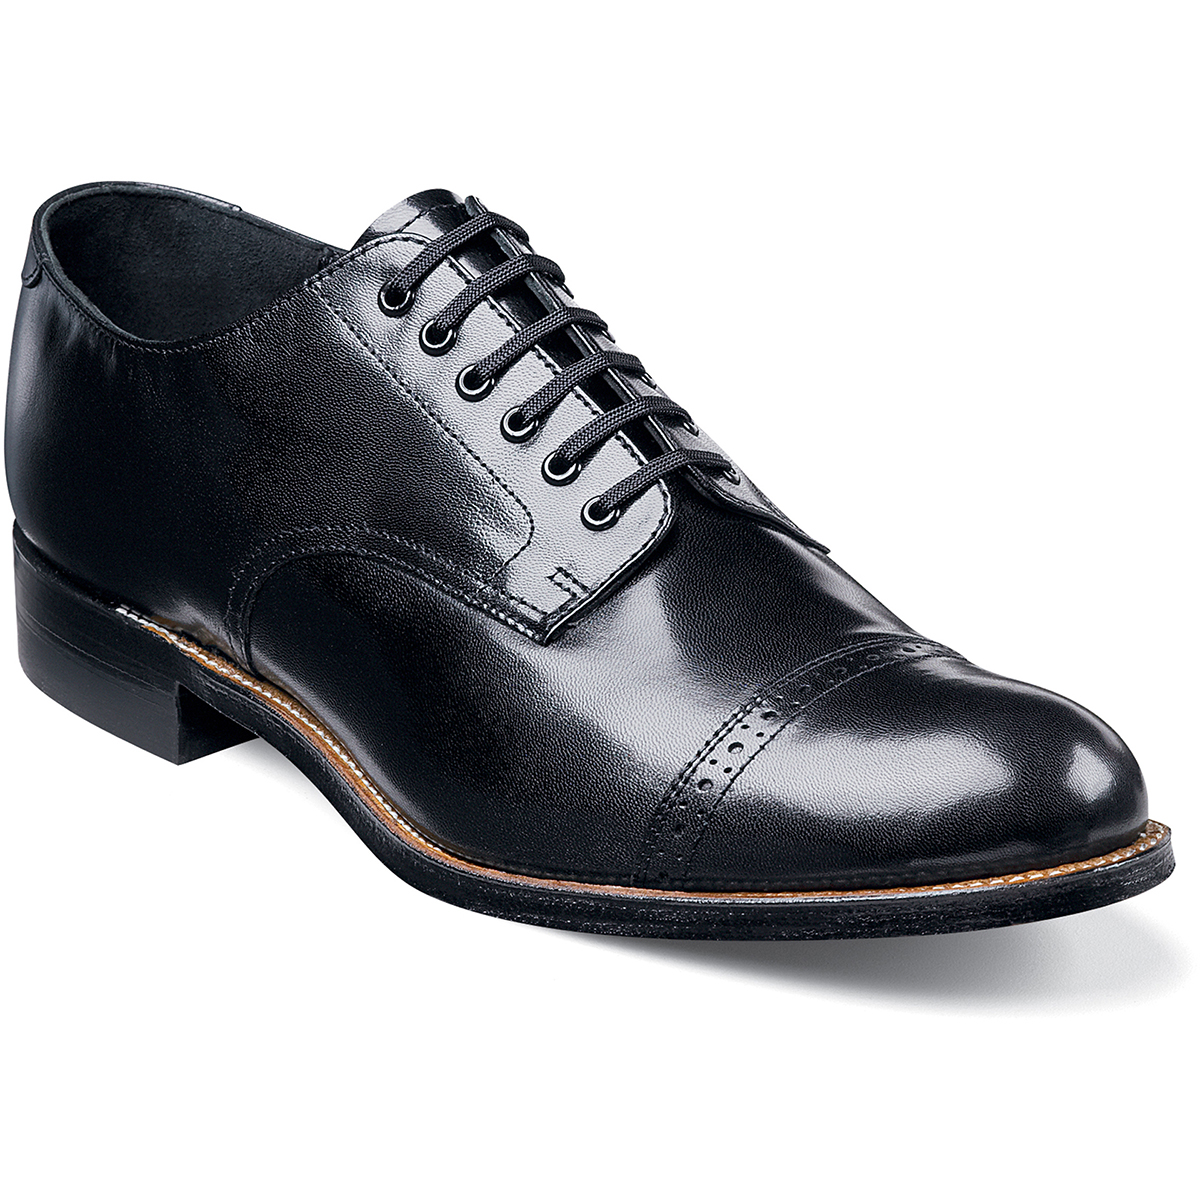 Stacy Adams Madison Leather Cap Toe Oxford